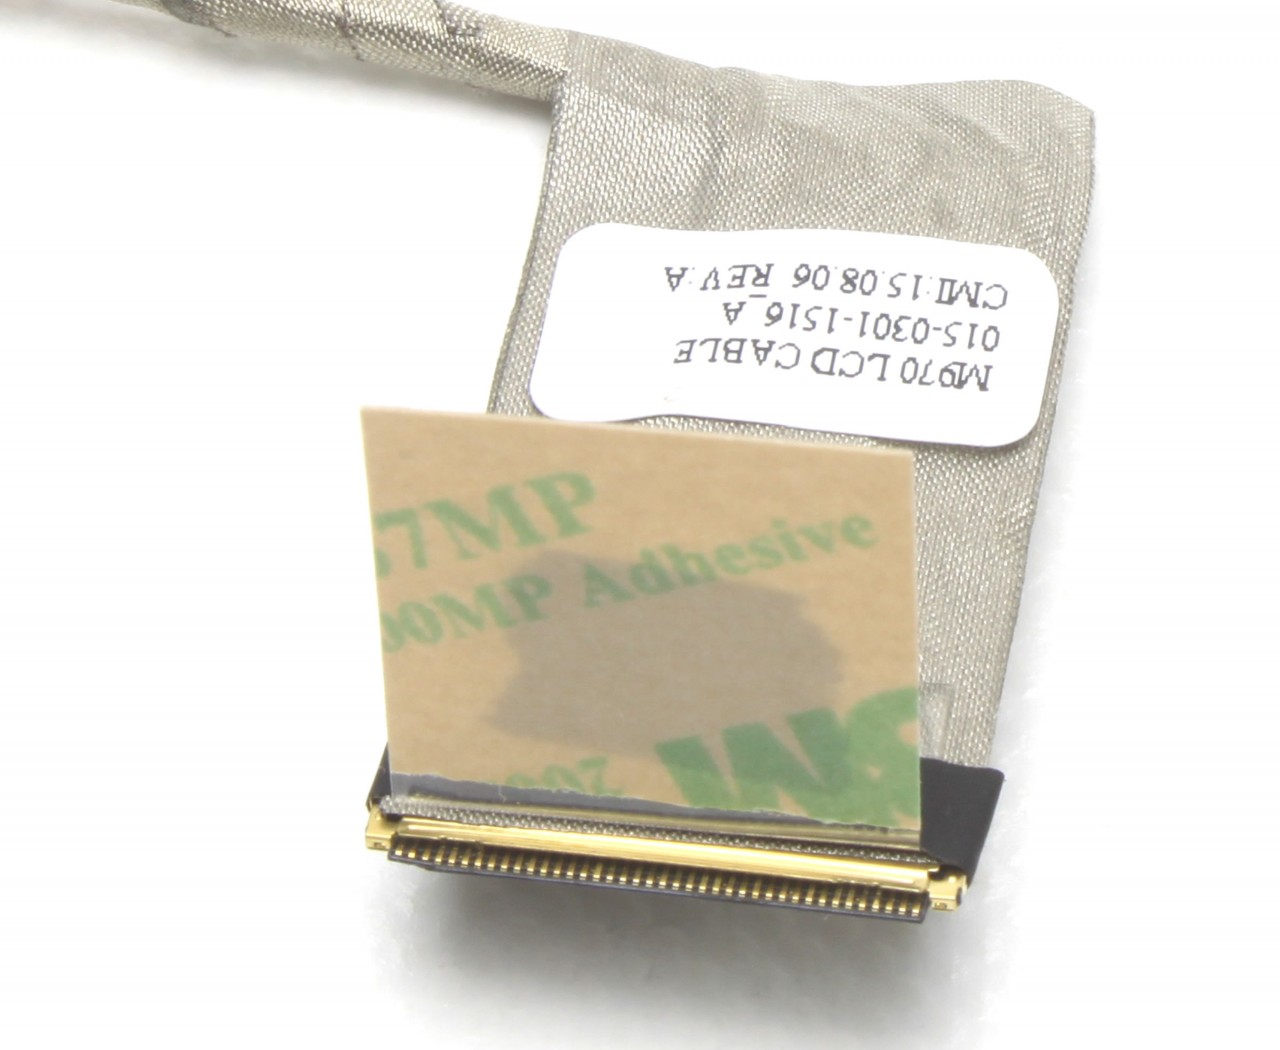 Cablu video LVDS Sony 015 0301 1516 A LED imagine powerlaptop.ro 2021